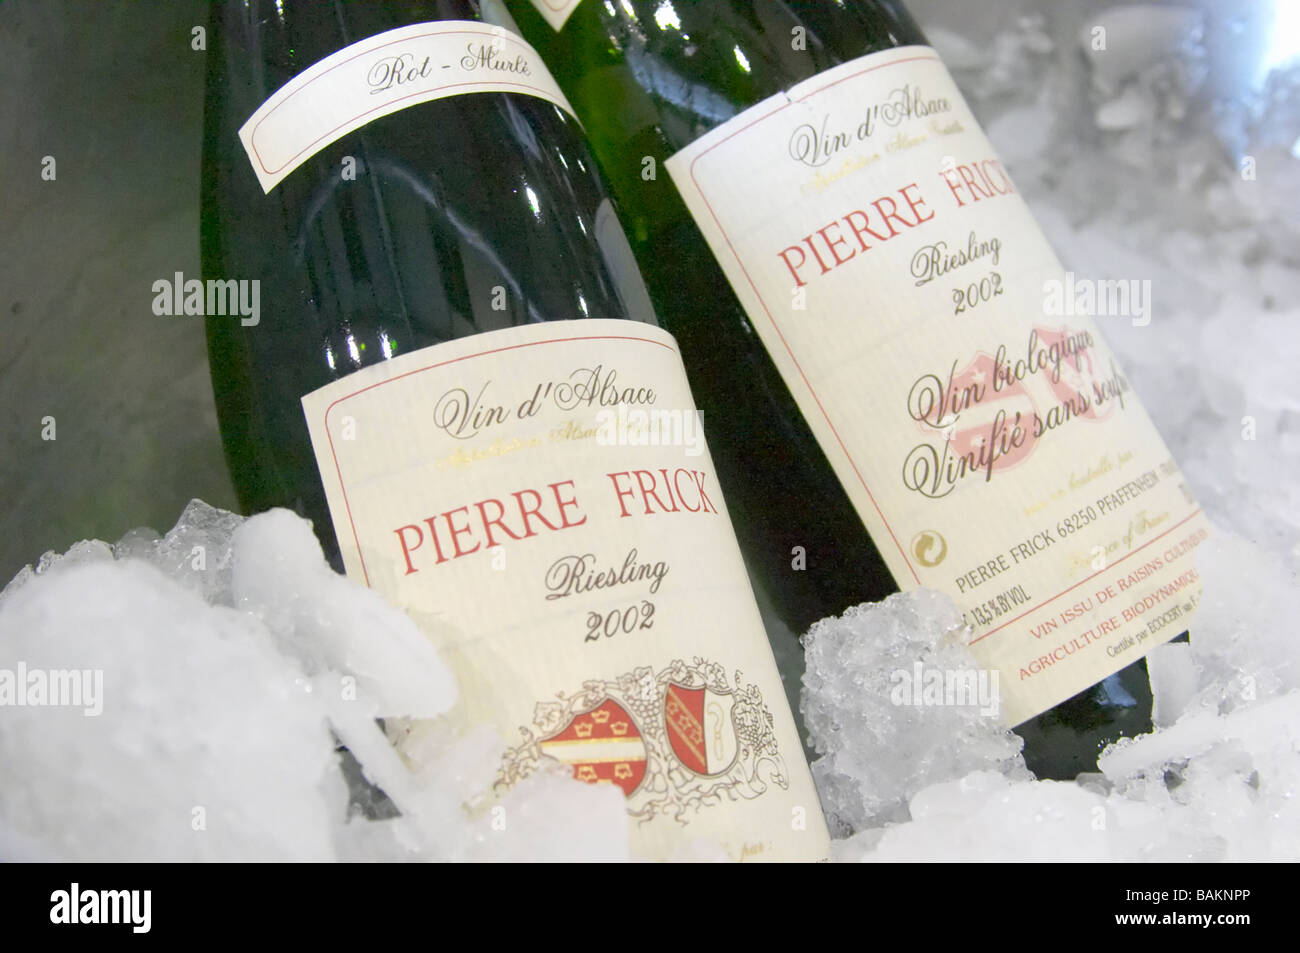 identical wines with and without sulphur riesling rot murle domaine pierre frick pfaffenheim alsace france - Stock Image